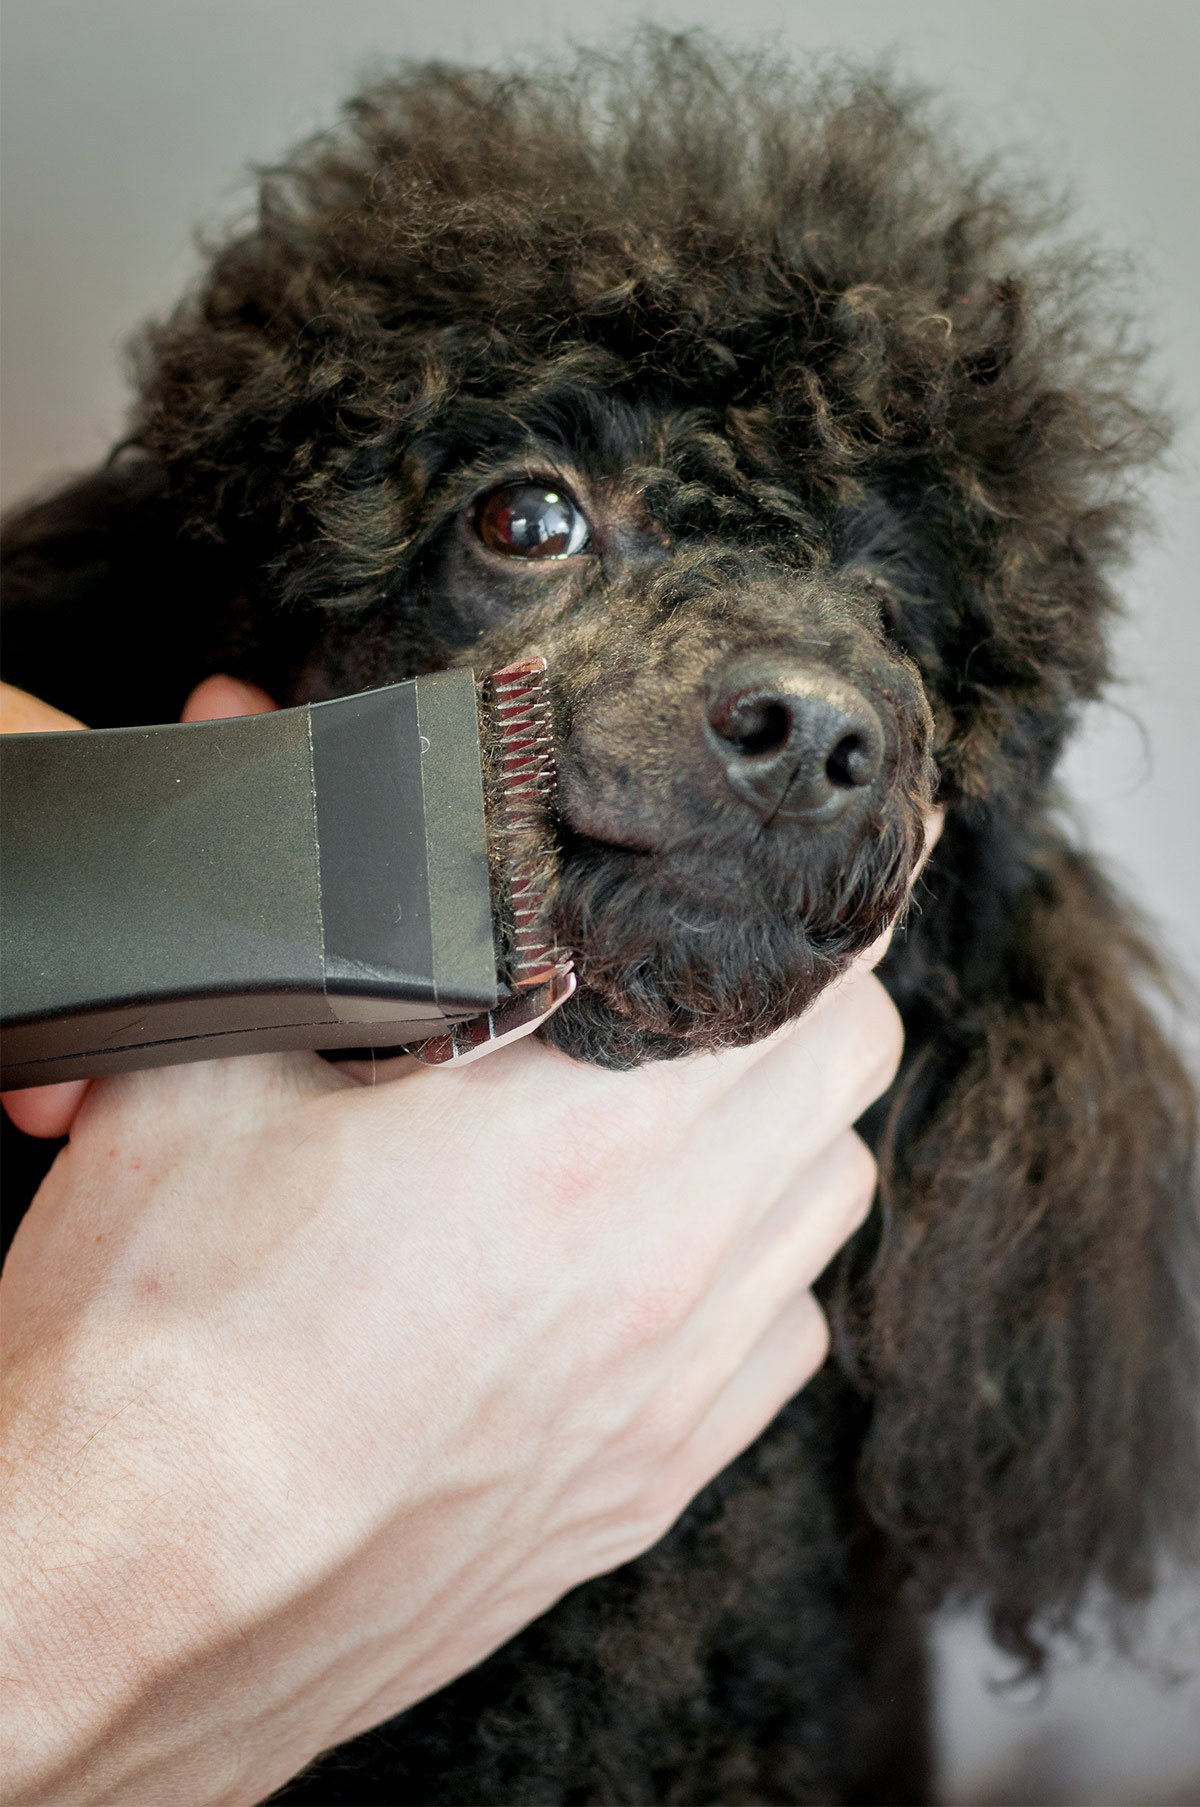 poodle grooming - a complete guide to how to groom a poodle